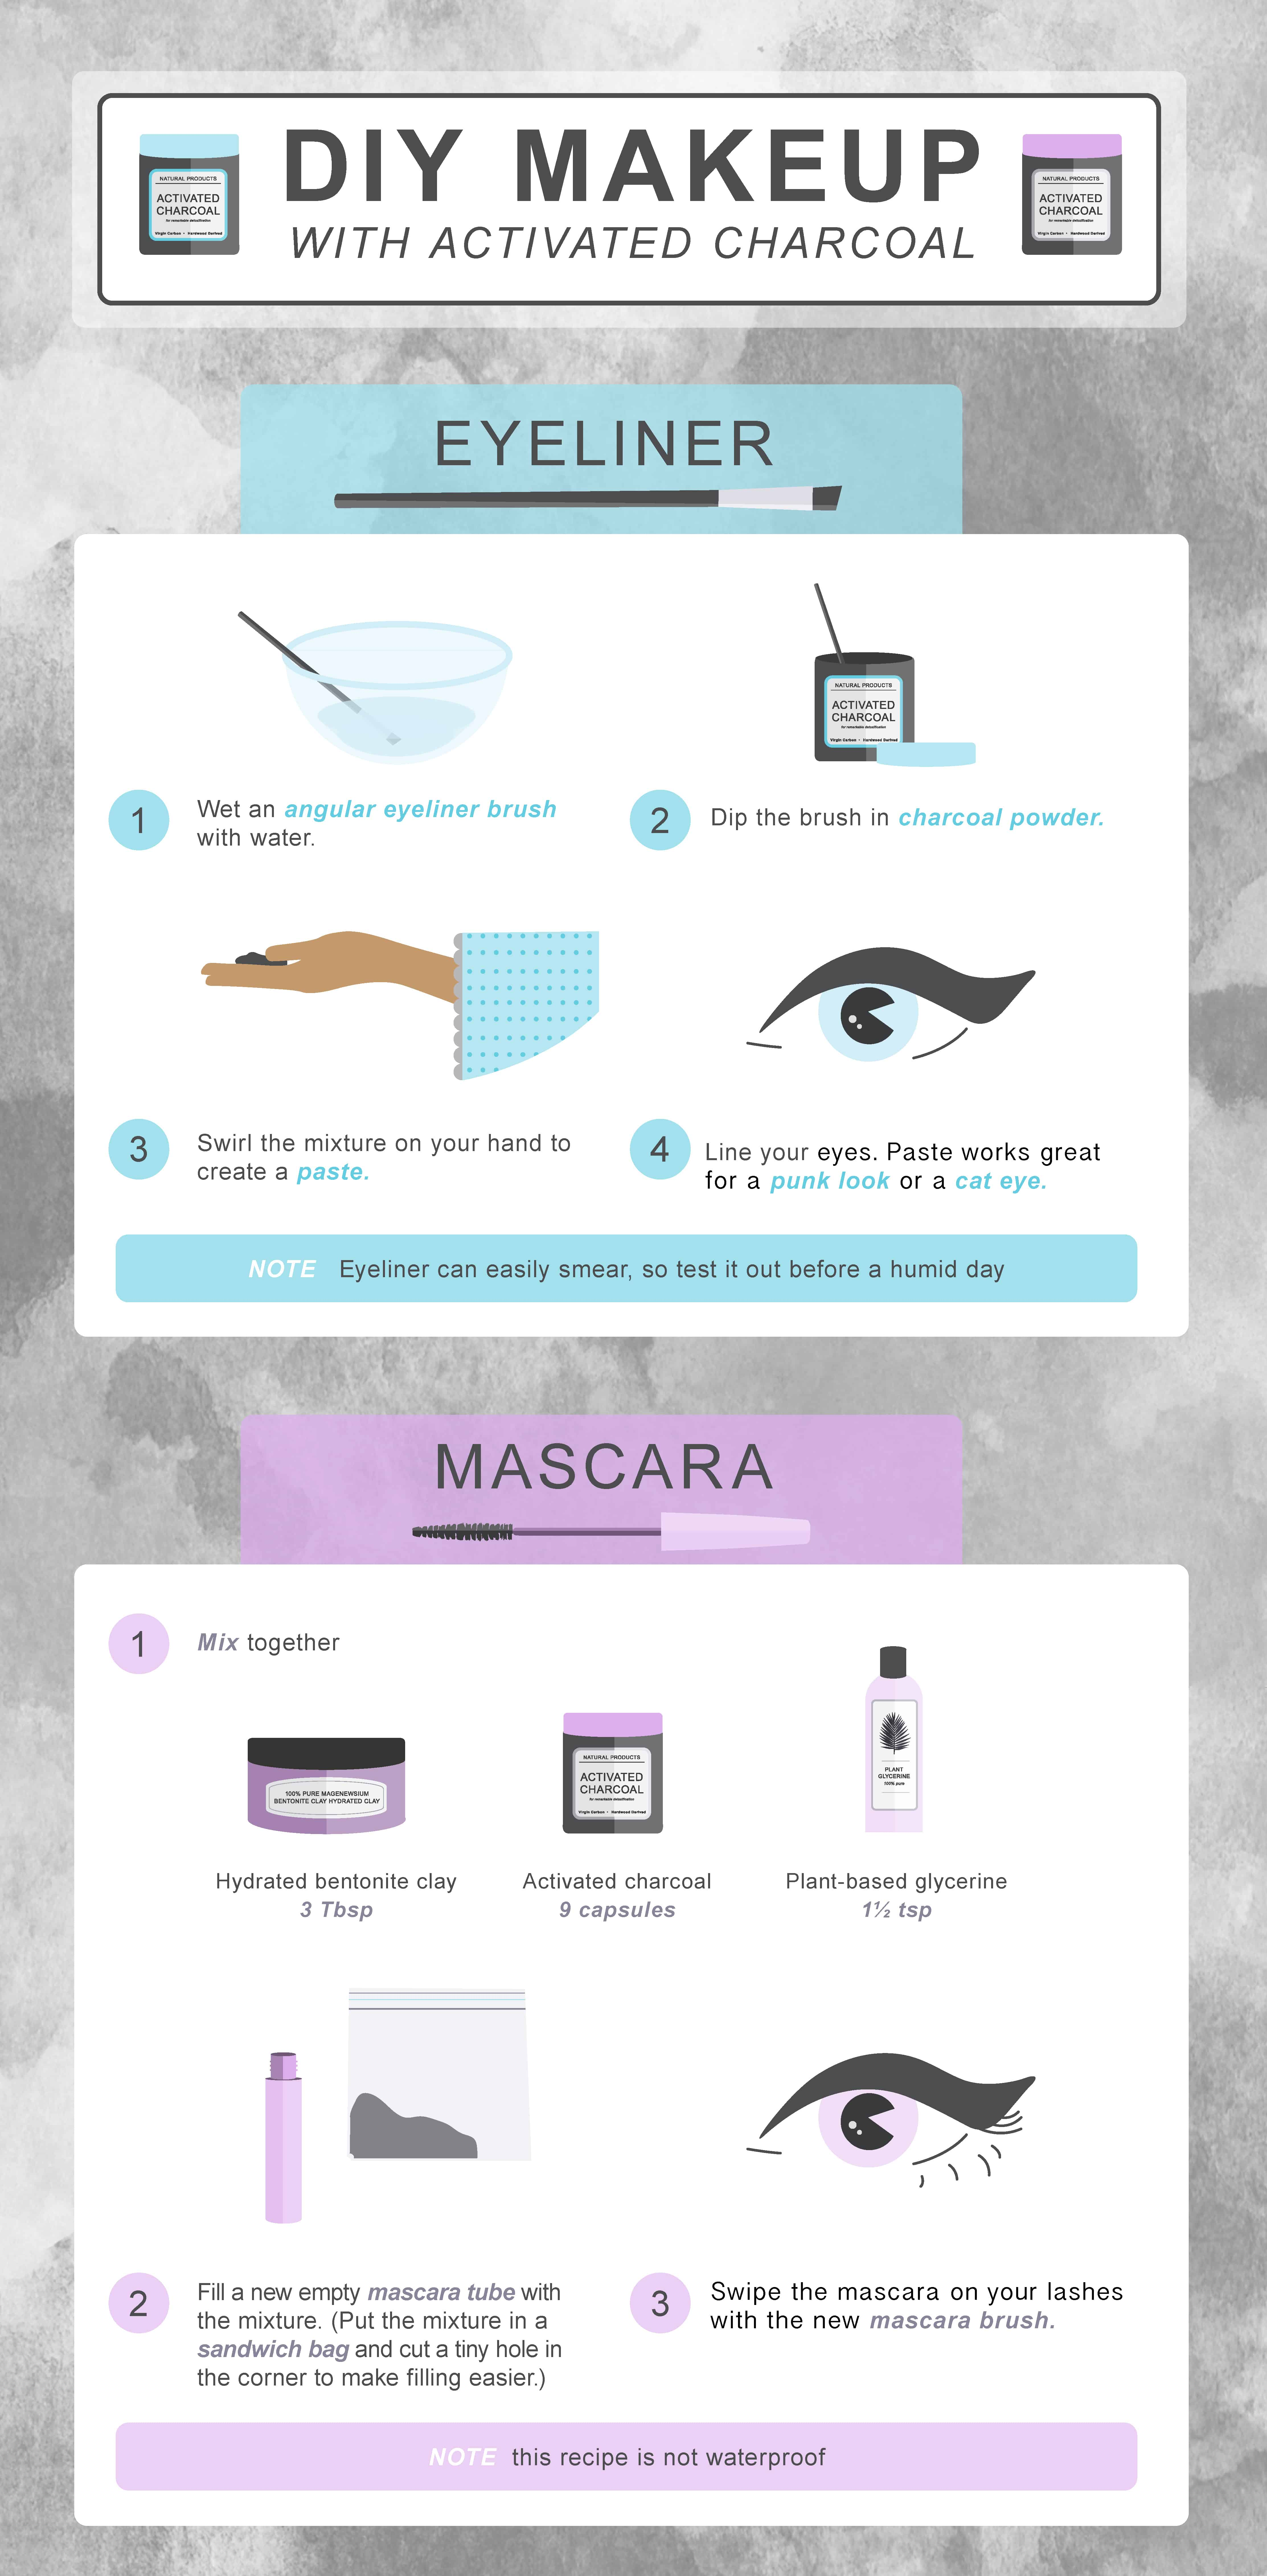 DIY Makeup With Activated Charcoal